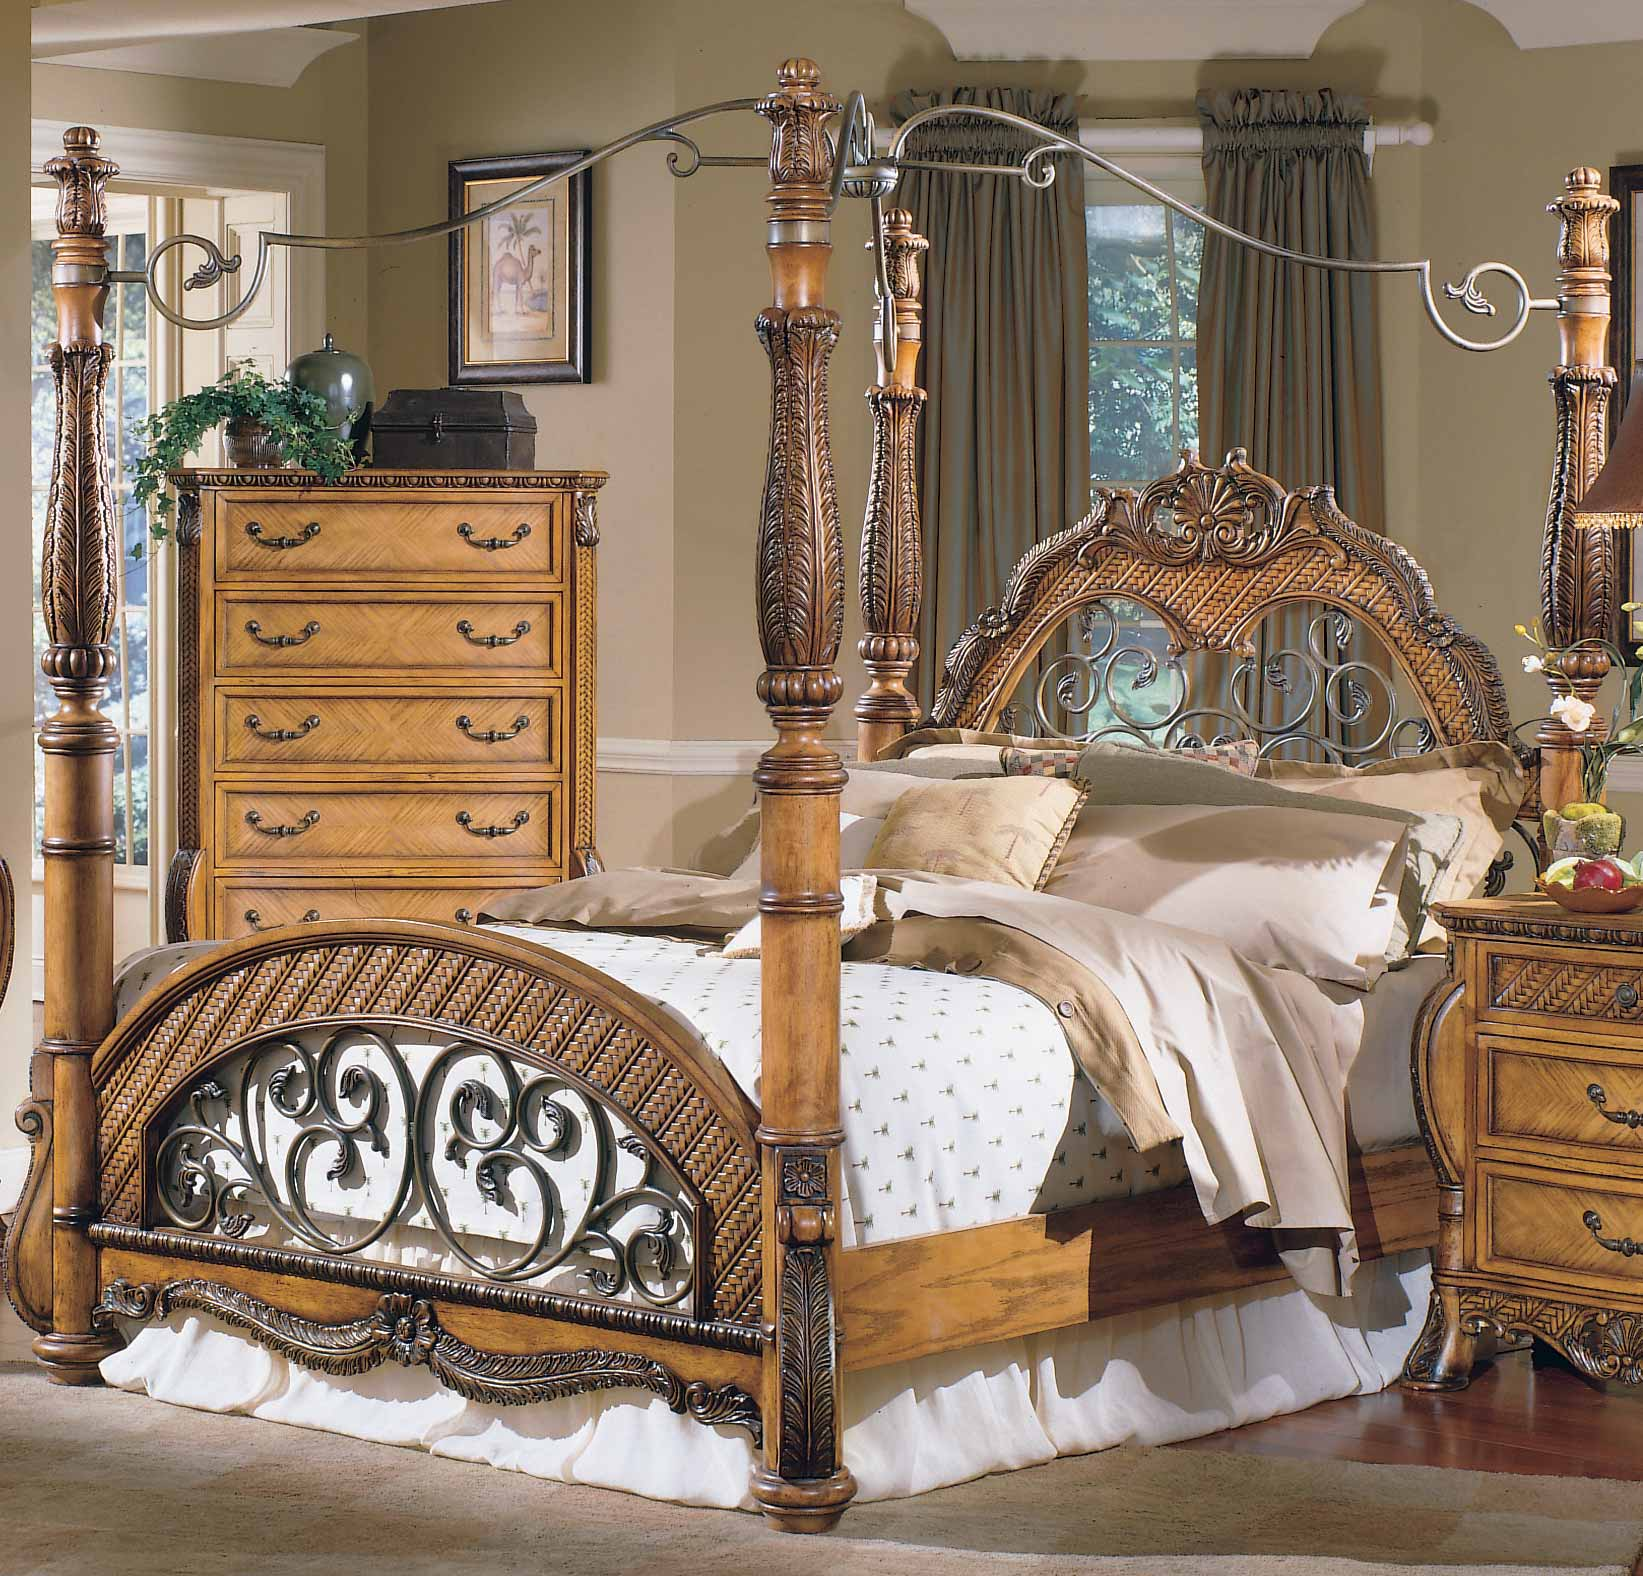 Homelegance South Beach Canopy Bed